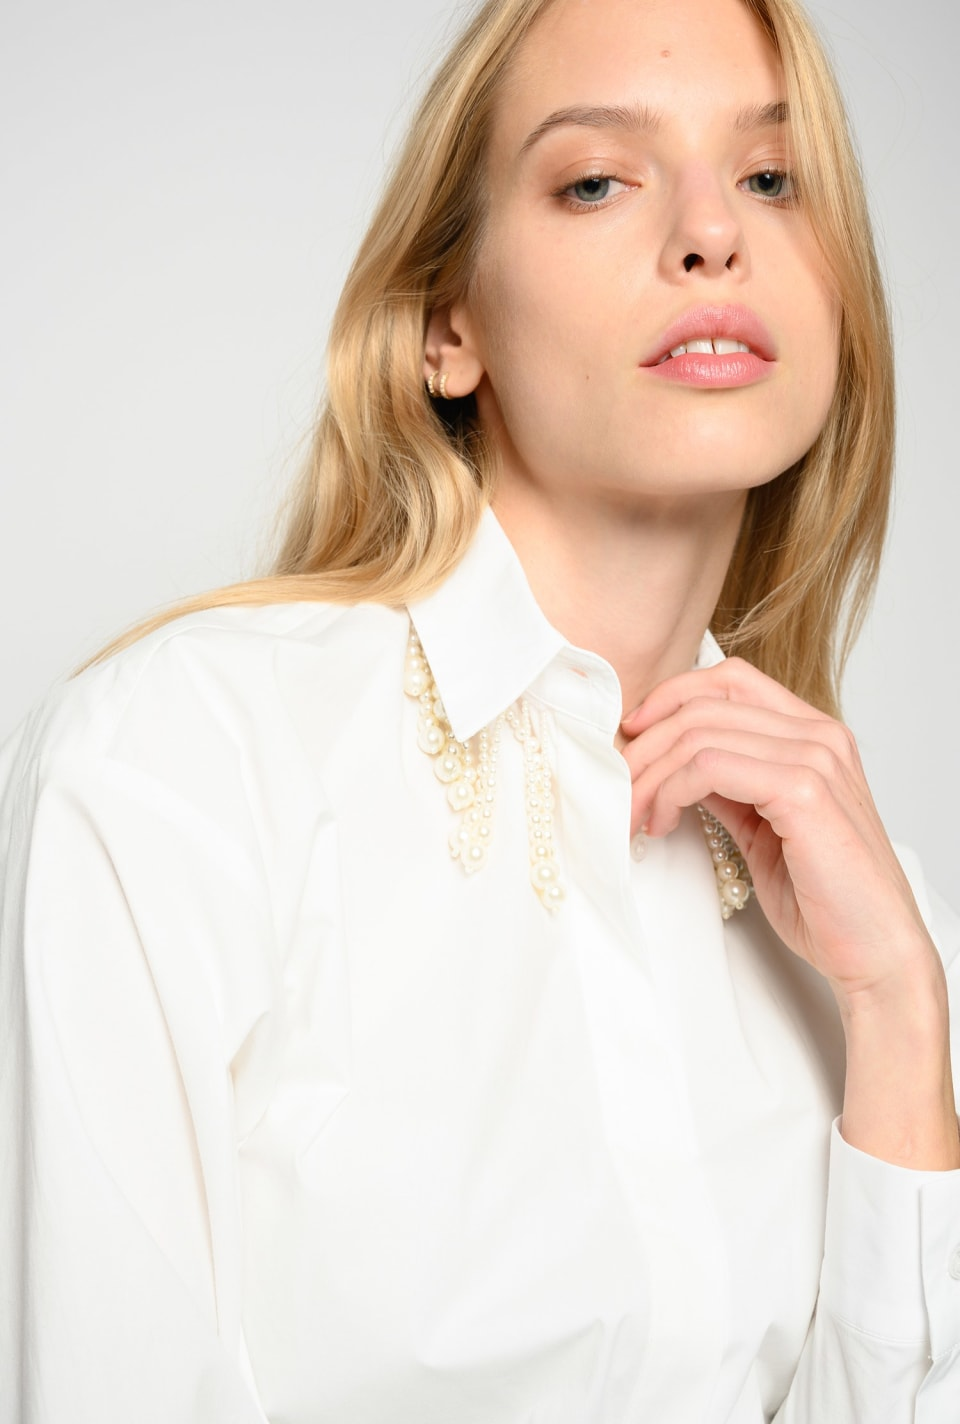 Shirt with beads on the collar - Pinko